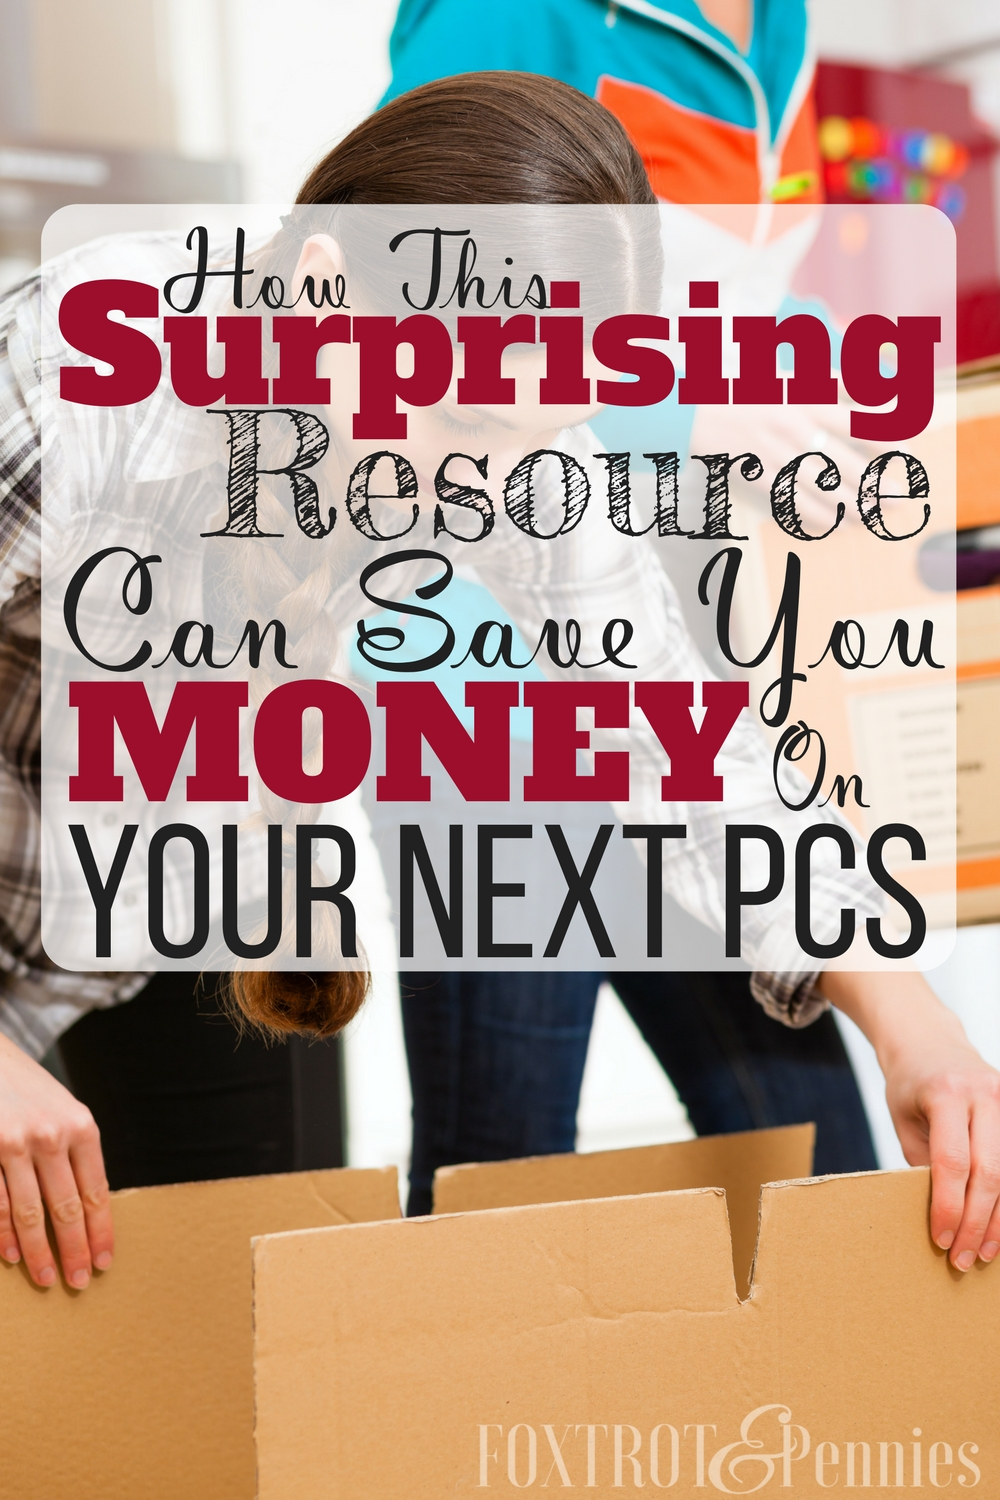 Wow- I never heard of this resource before! So good to know! Not only will it actually reduce a TON of stress during PCS season but it will also help us next time around to save money on PCS! Budget friendly PCSing is always a huge win!